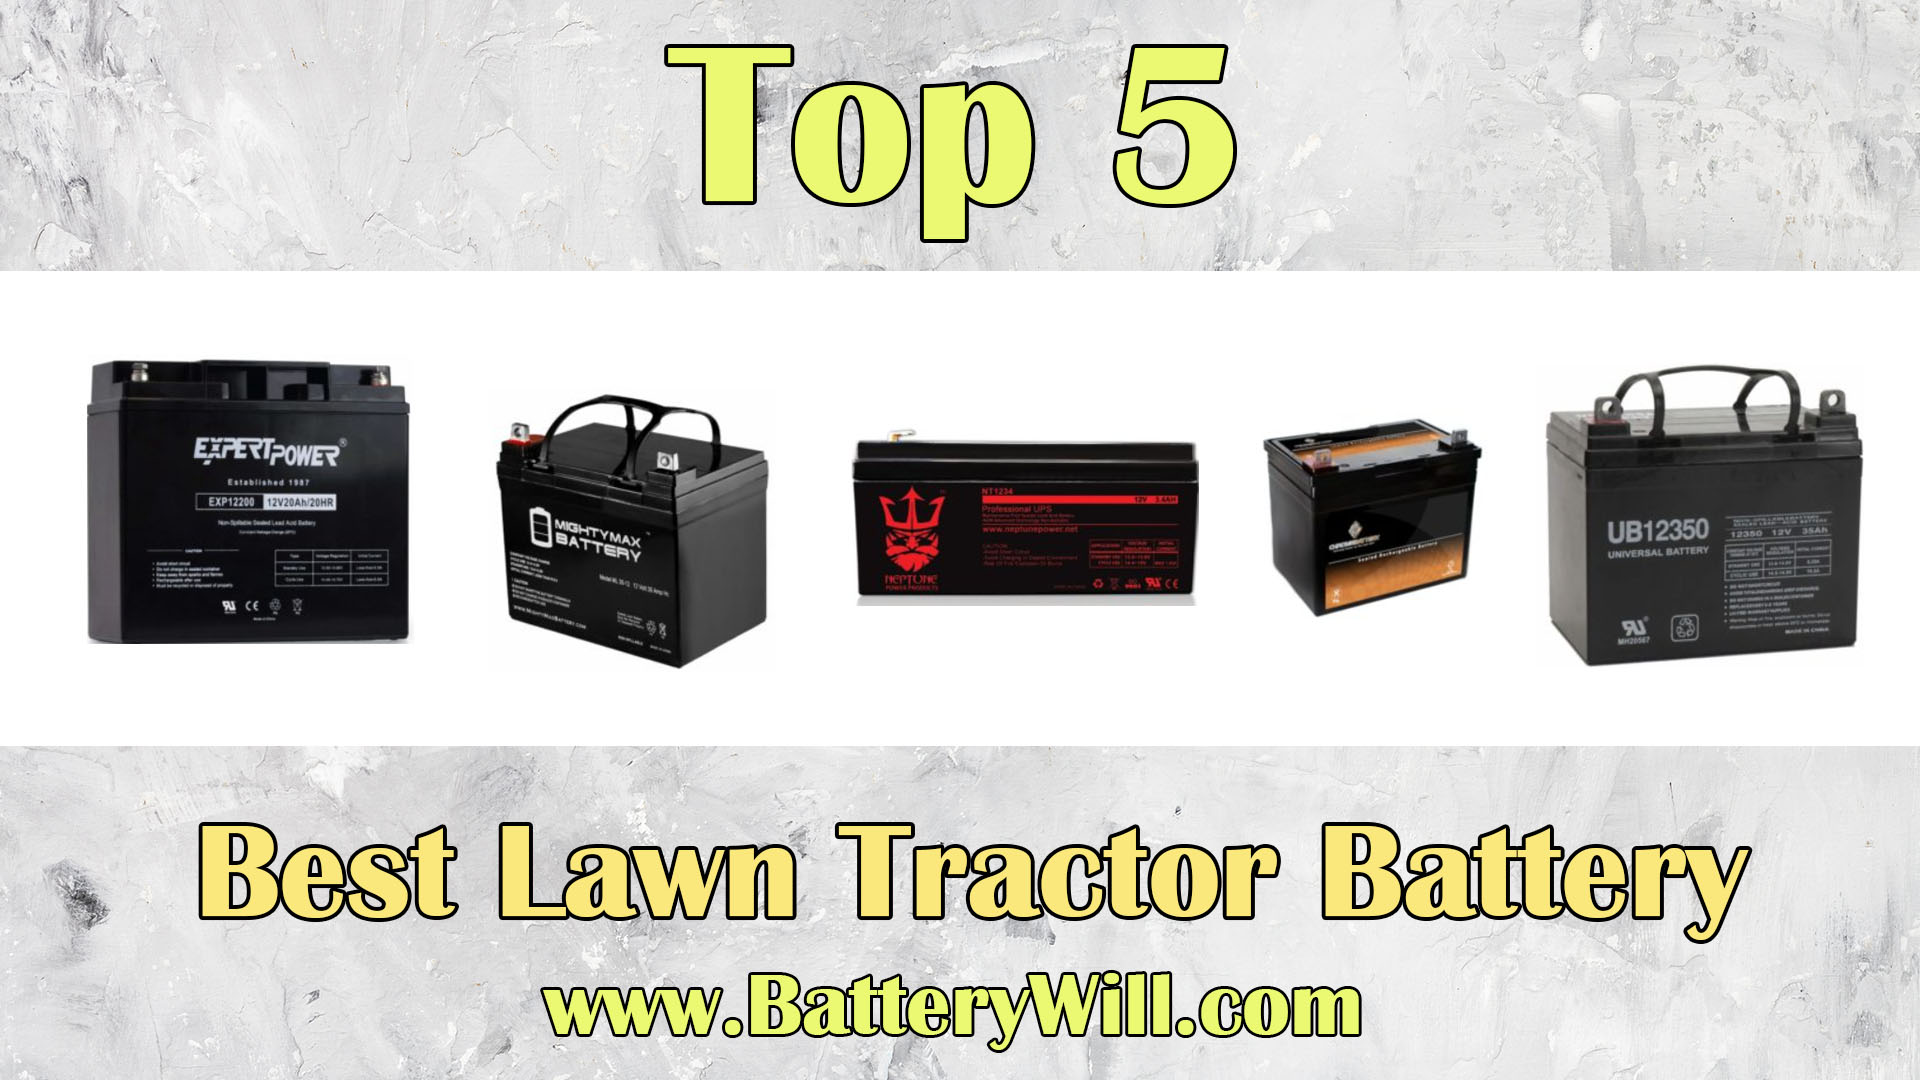 A Detailed Guide To Finding The Best Lawn Tractor Battery